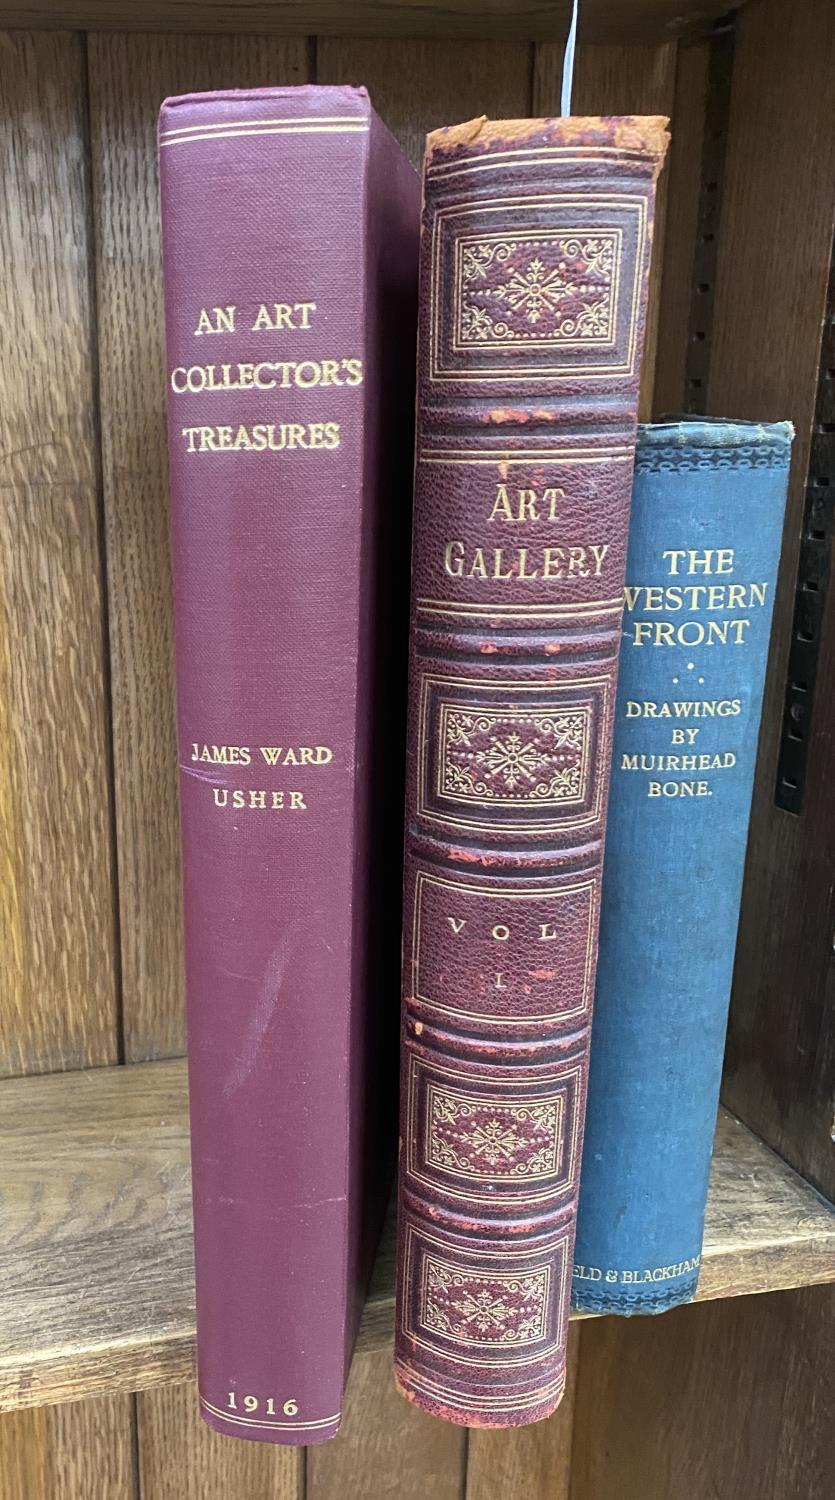 J S VIRTUE & CO, PUBLISHER - THE ART GALLERY ILLUSTRATED BY ONE HUNDRED AND FIFTY STEEL